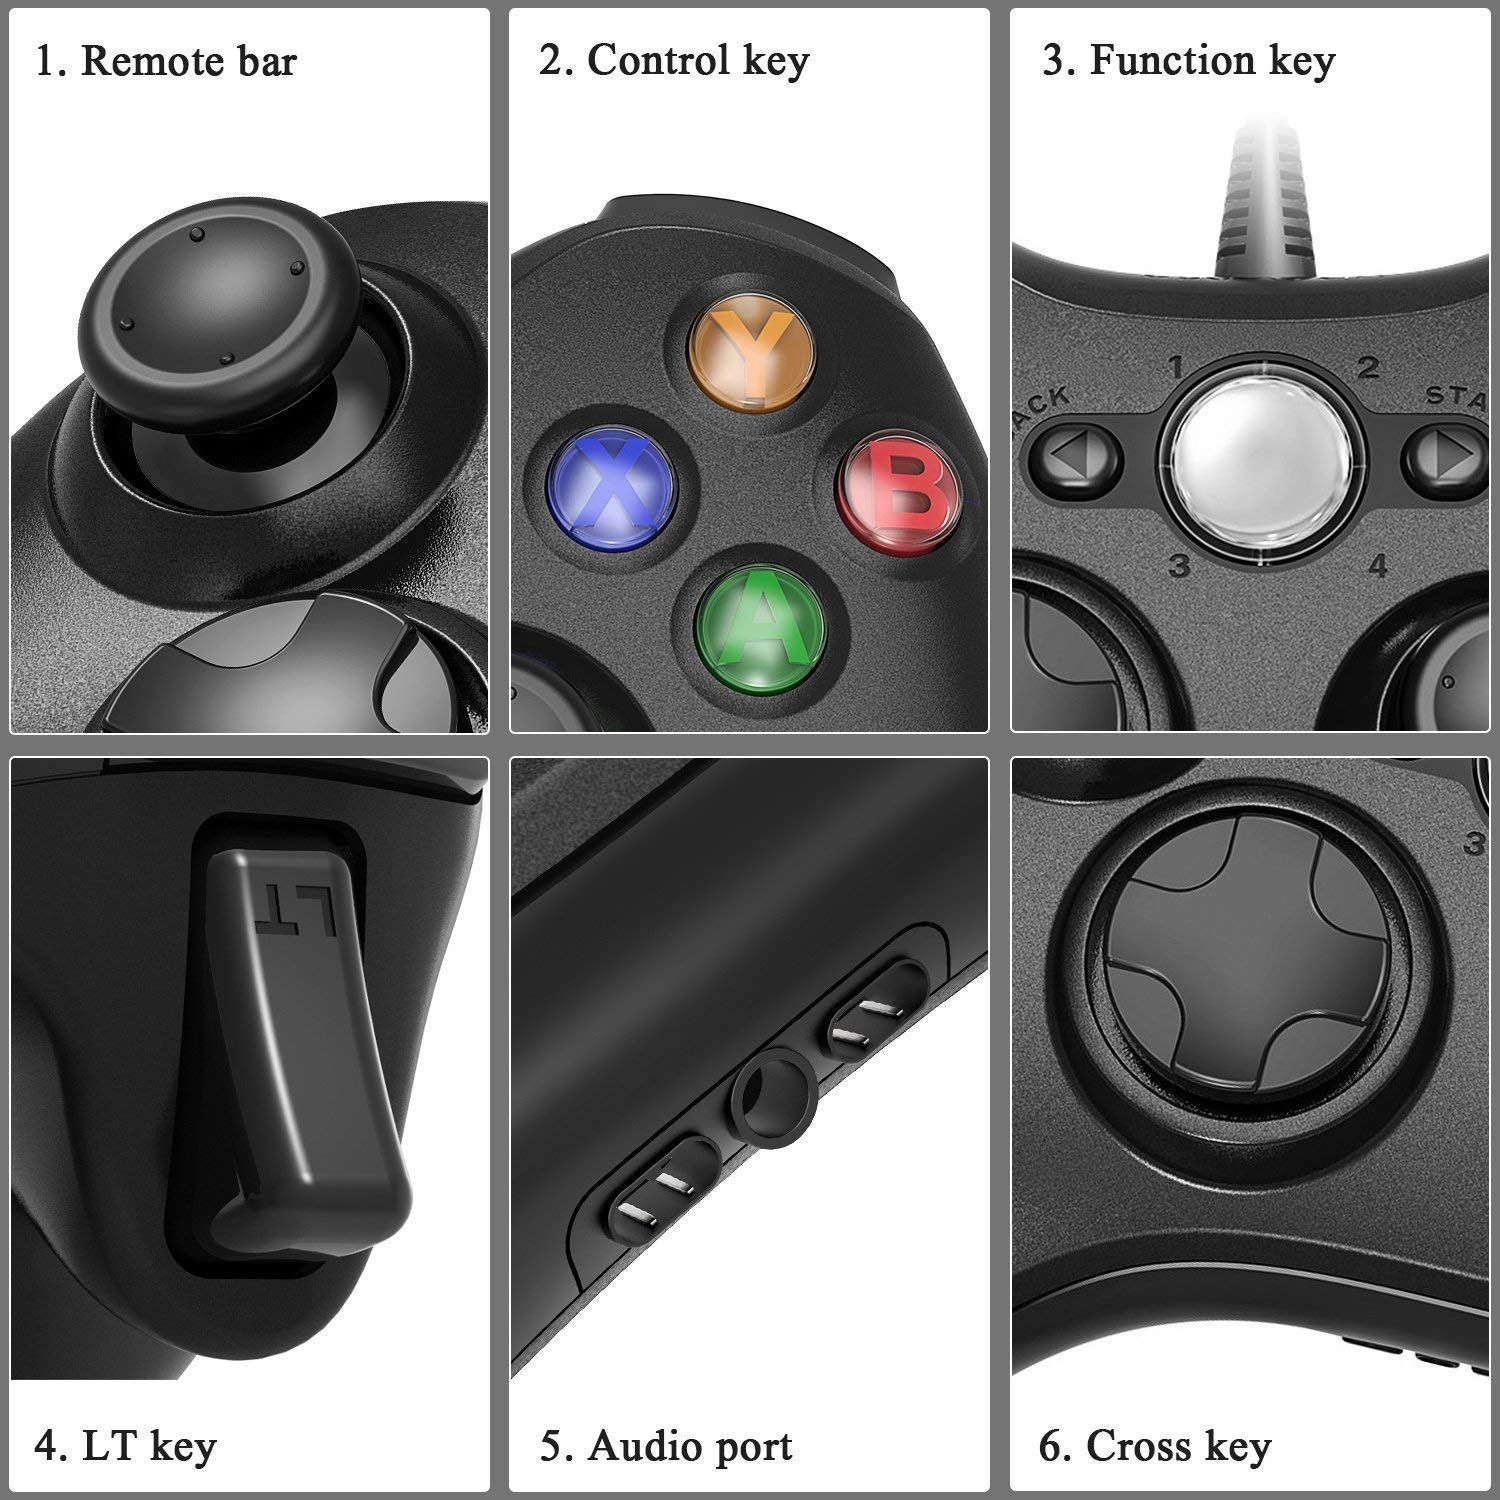 Jamswall Xbox 360 Game Controller Game Controller Gamepad Usb Wired Shoulders Buttons Improved Ergonomic Des Xbox 360 Games Wireless Controller Game Controller